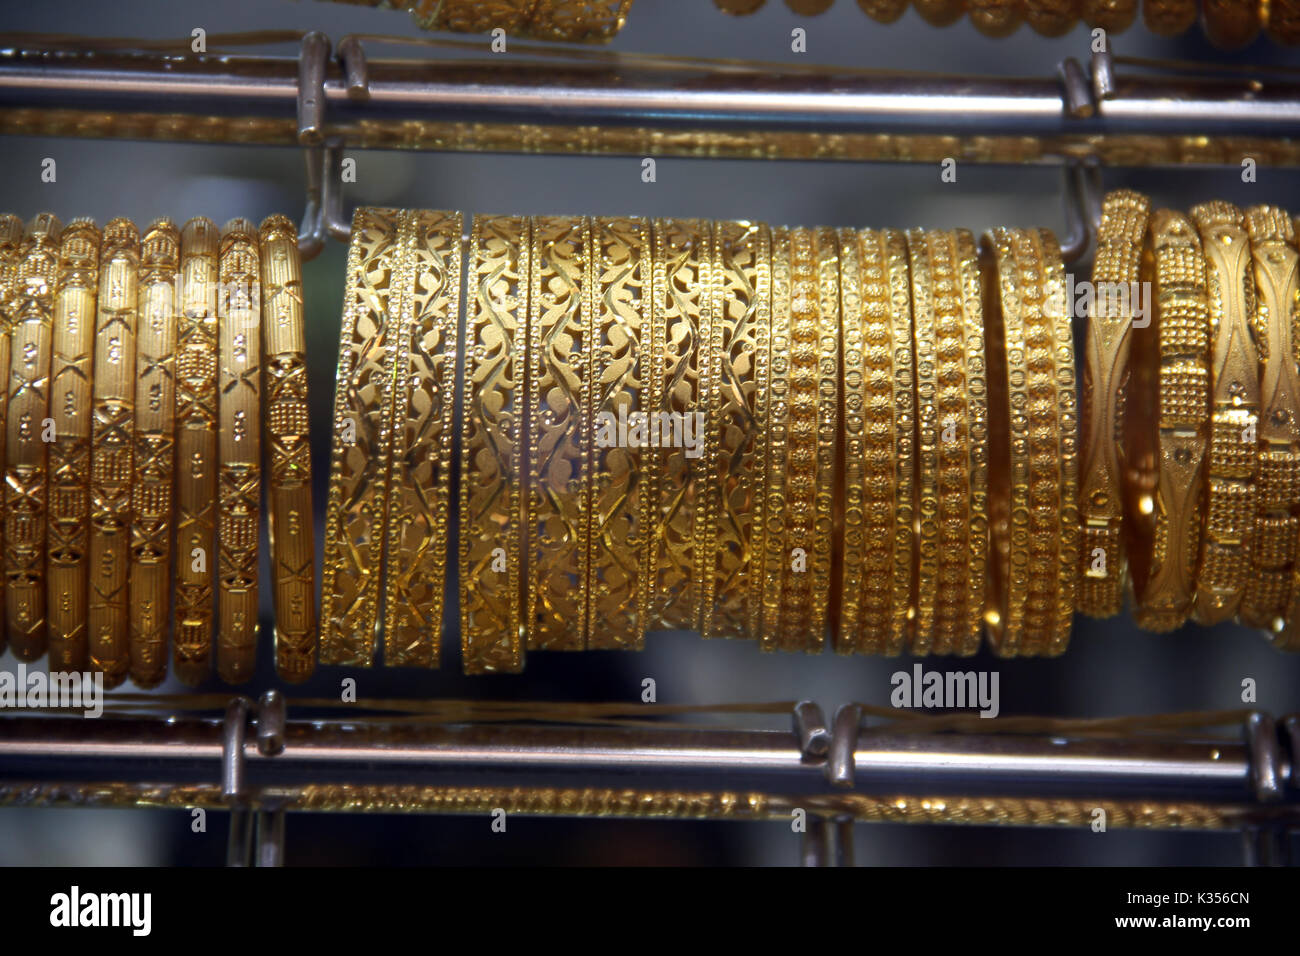 Precious gold bangles made in ethnic delicate designs and patterns - Stock Image